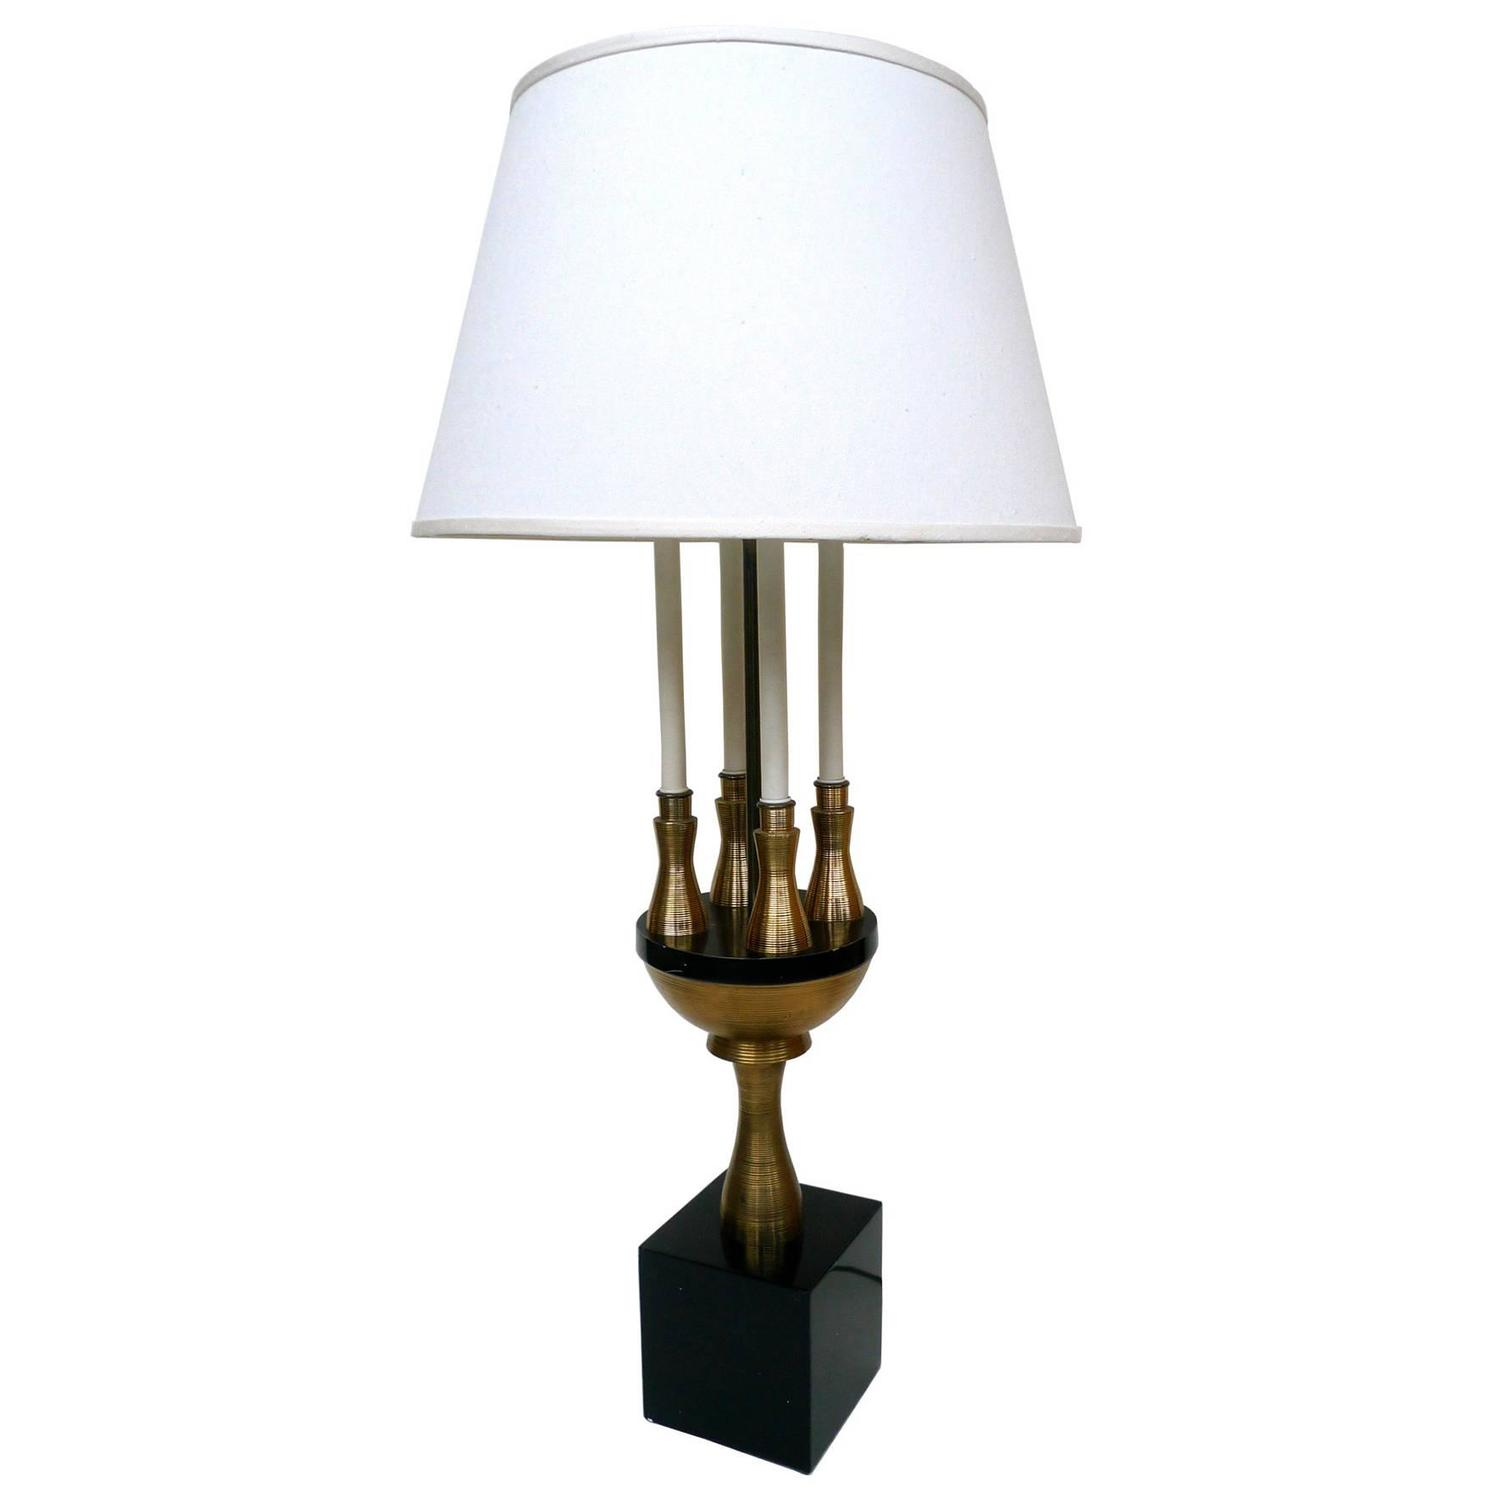 Tall Table Lamp Attributed To Tommi Parzinger At 1stdibs